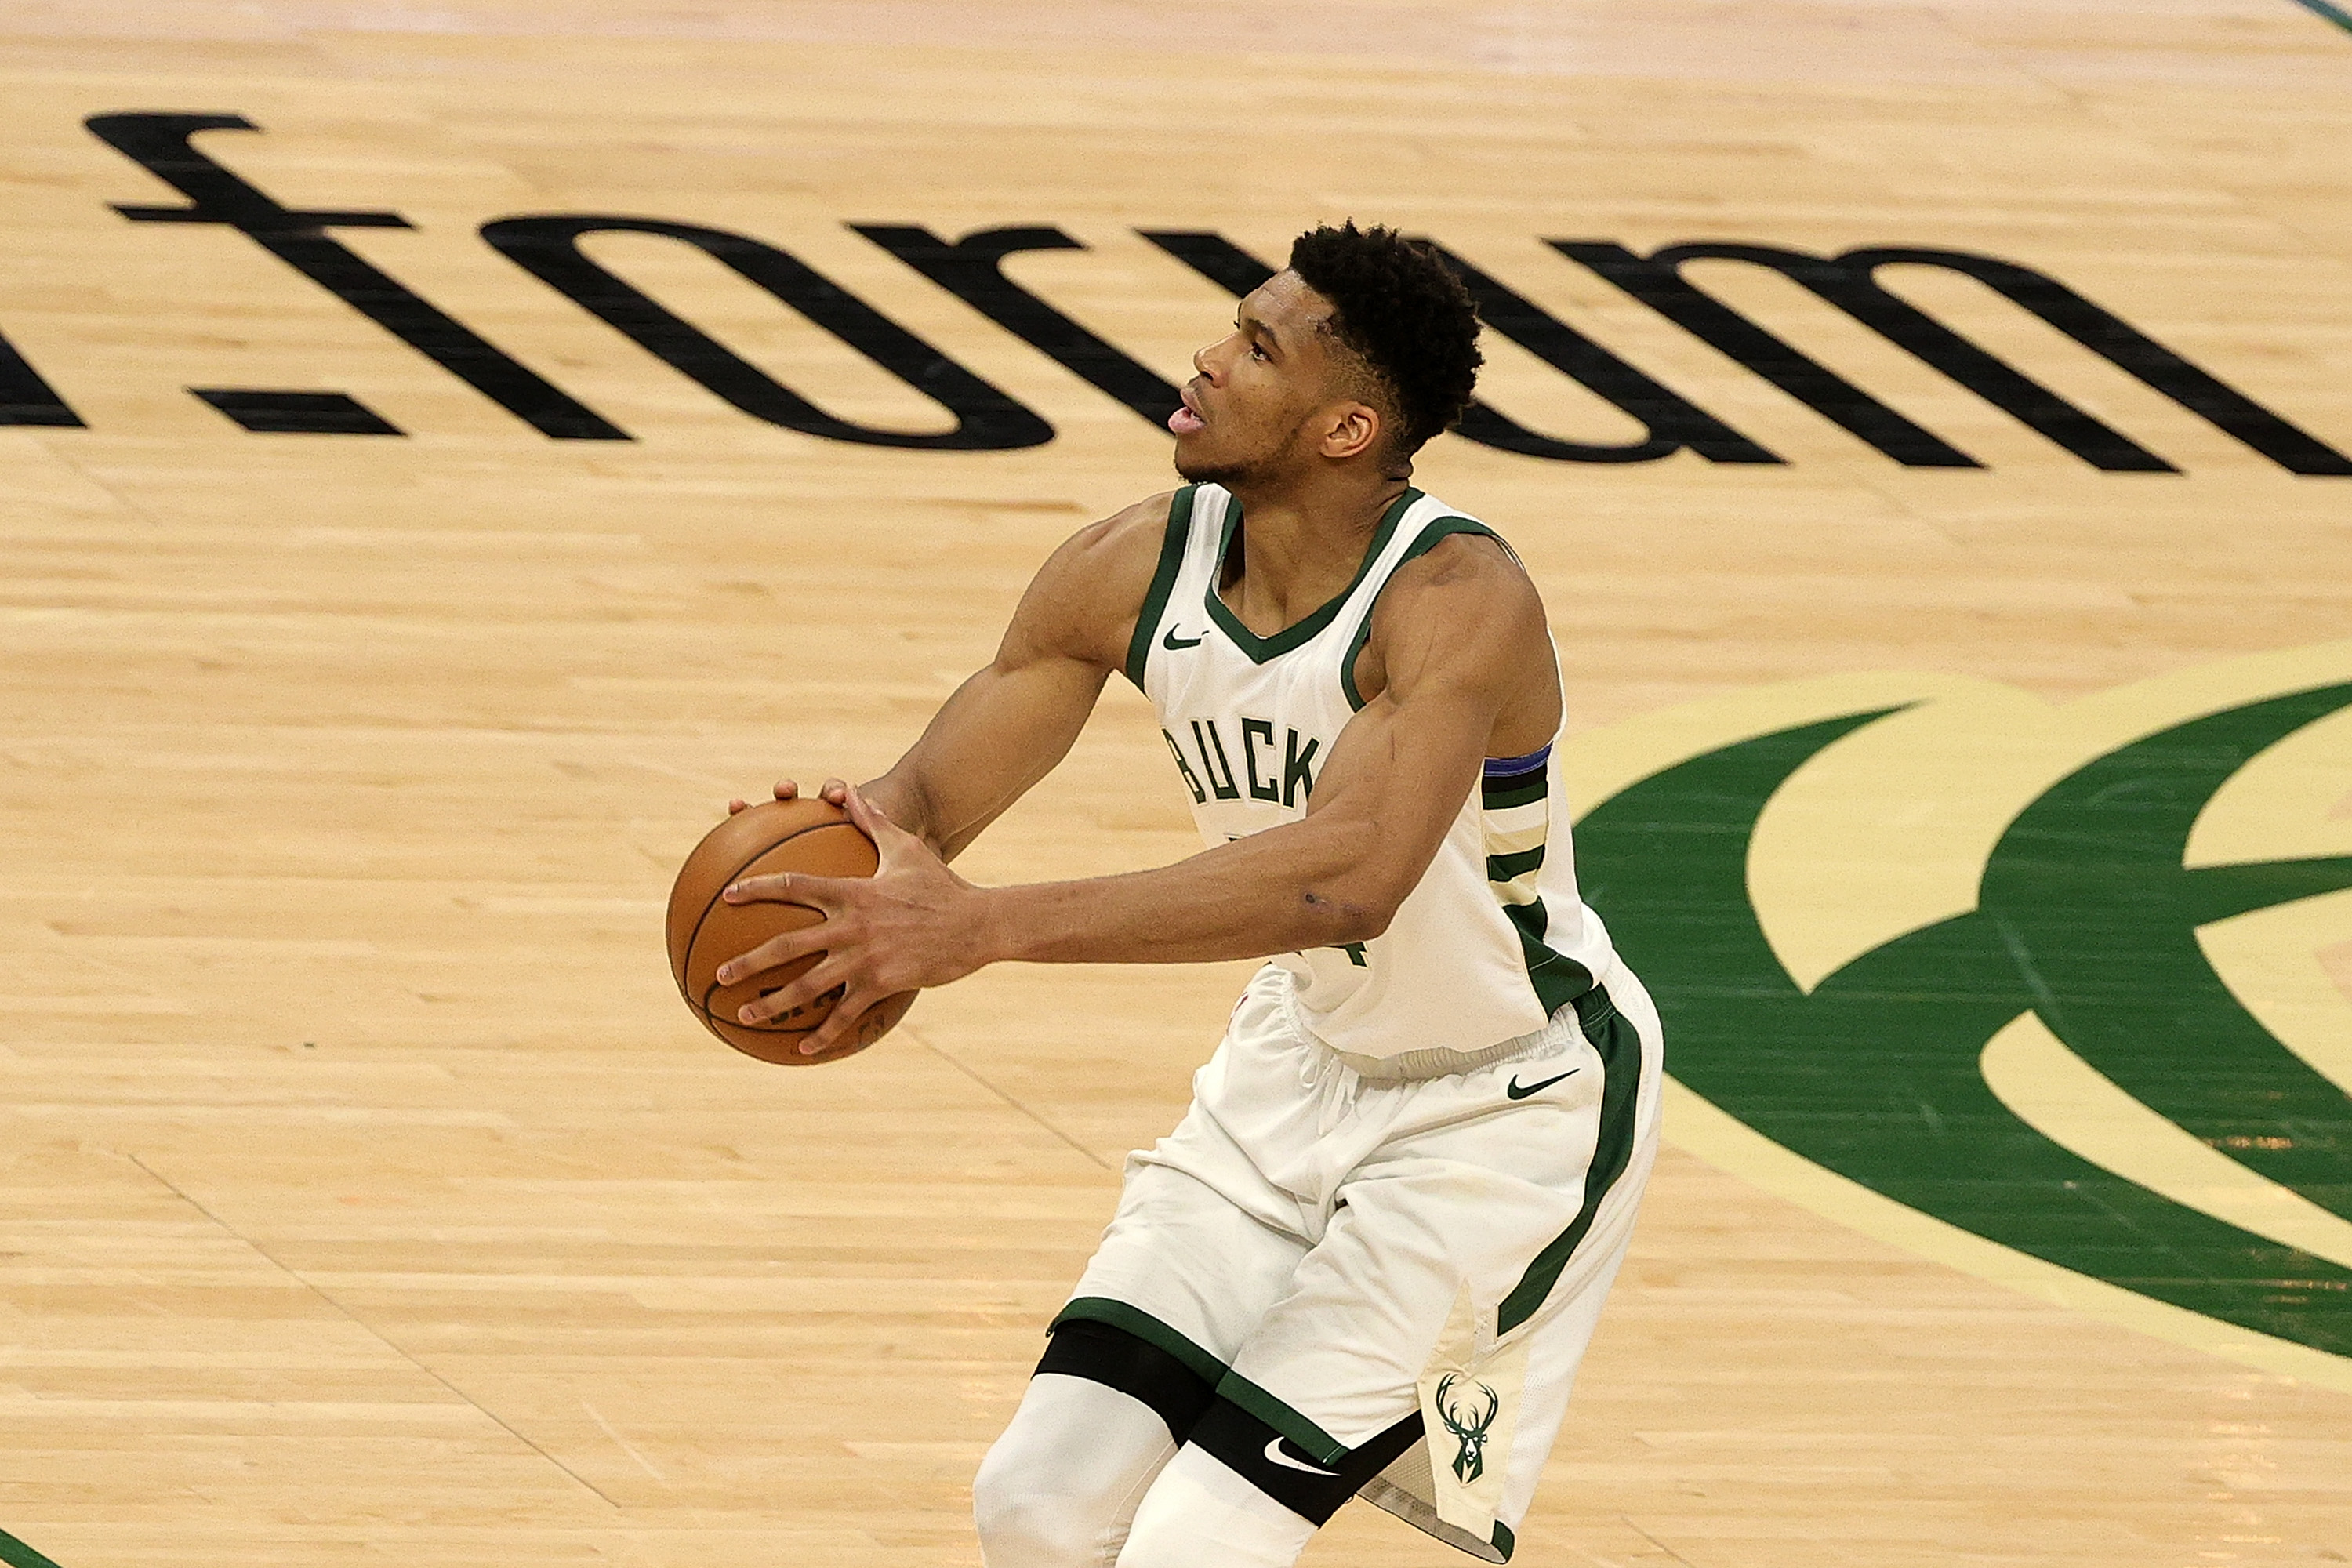 Giannis Antetokounmpo and the Milwaukee Bucks Are Ready for Revenge, and the Miami Heat Shouldn't Be the Only Team Concerned